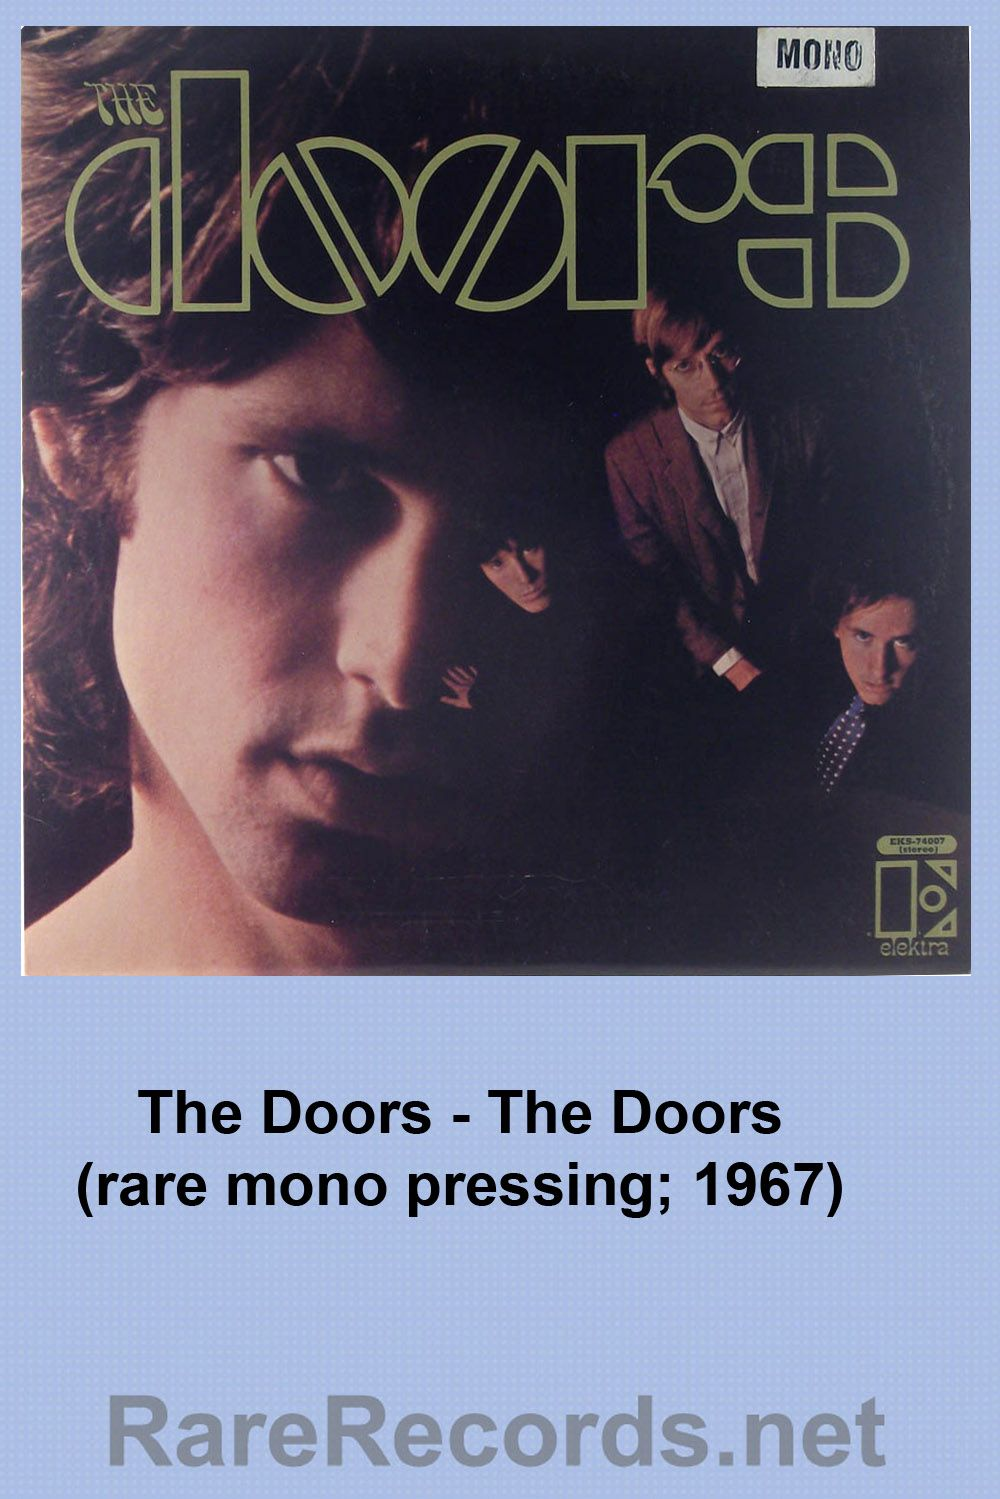 Rare mono pressing of the Doors self-titled first album. Released in 1967